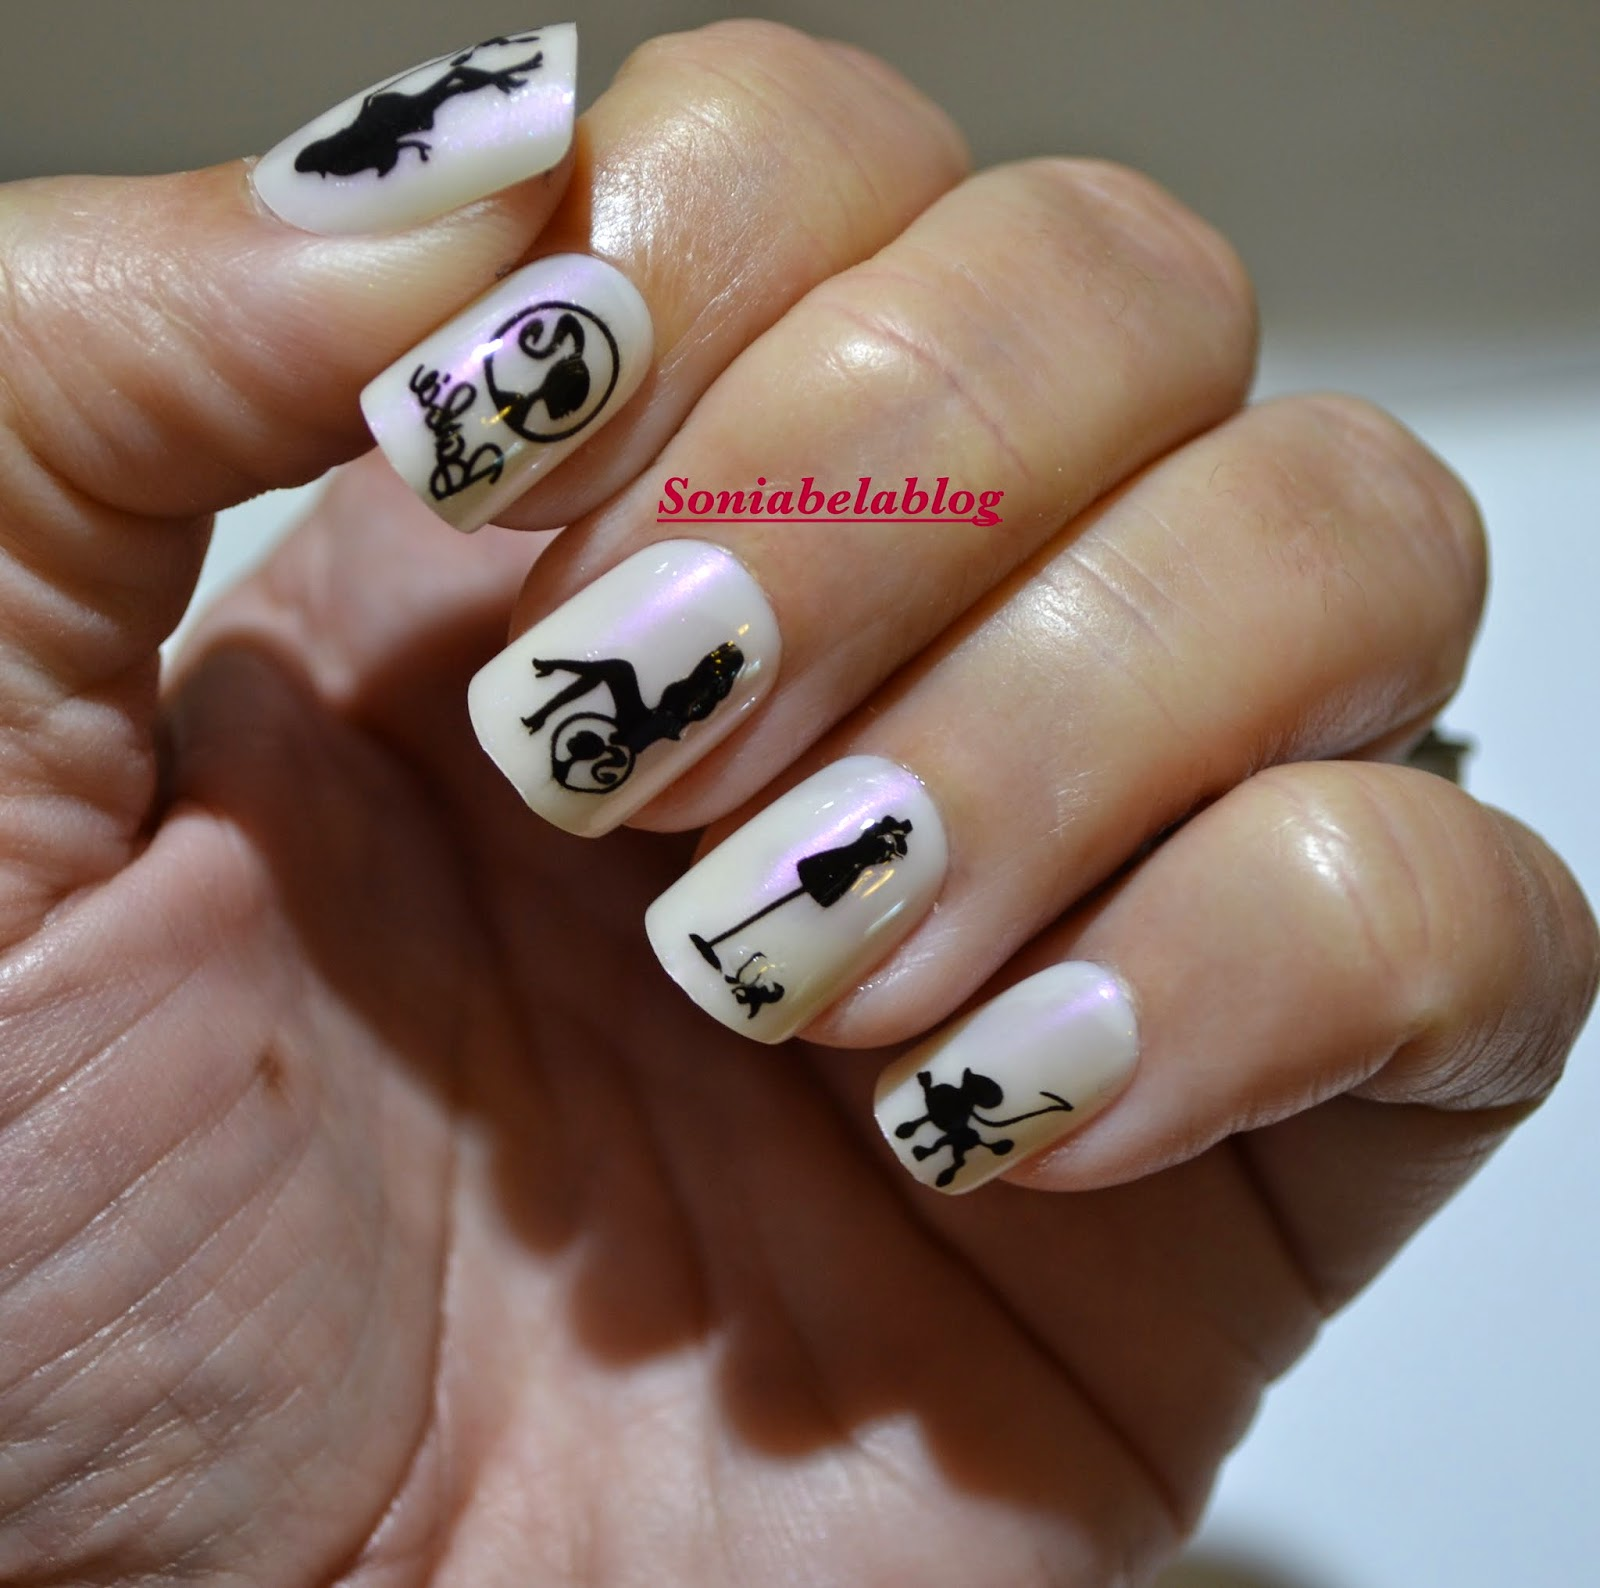 Nail design ideas barbie in black and white easy nail art ii nail design ideas barbie in black and white easy nail art ii prinsesfo Images